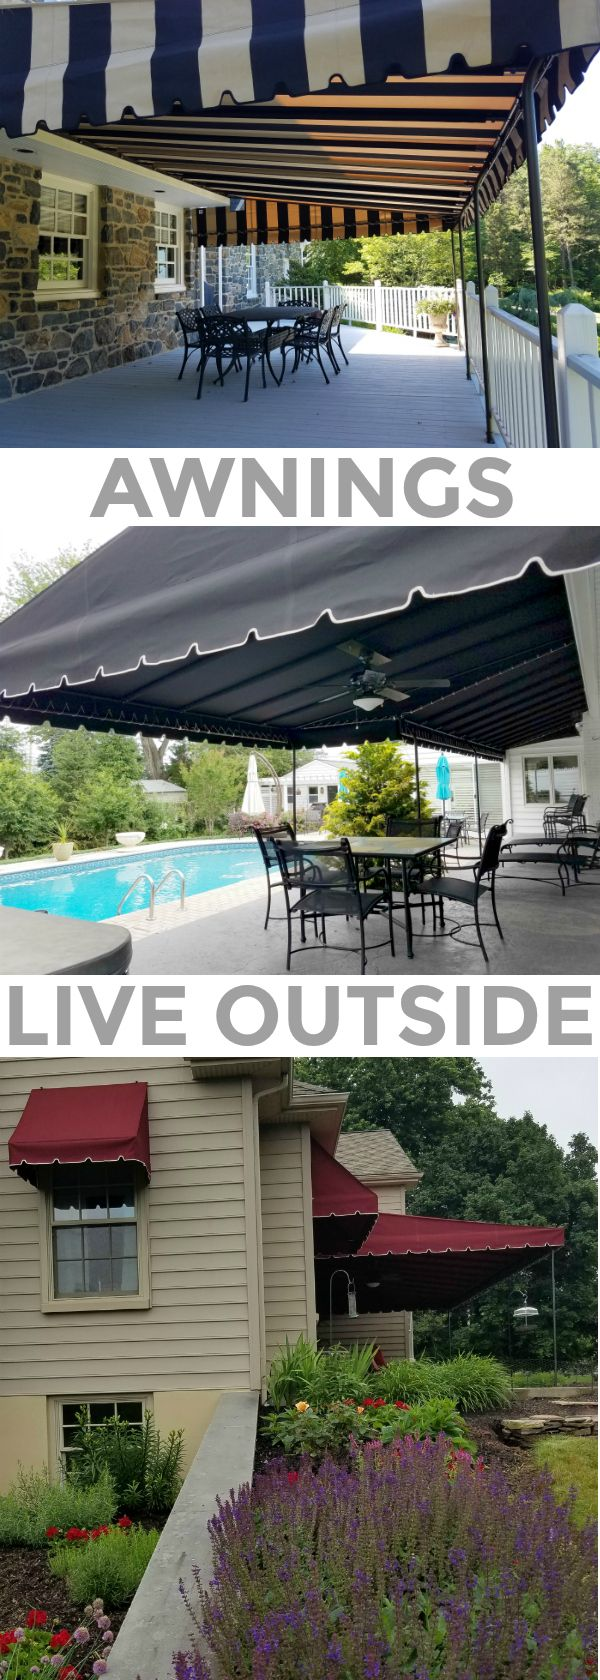 Live outside by reclaiming your hot unusable patio area by installing a stationary canopy. Sun & Live outside by reclaiming your hot unusable patio area by ...